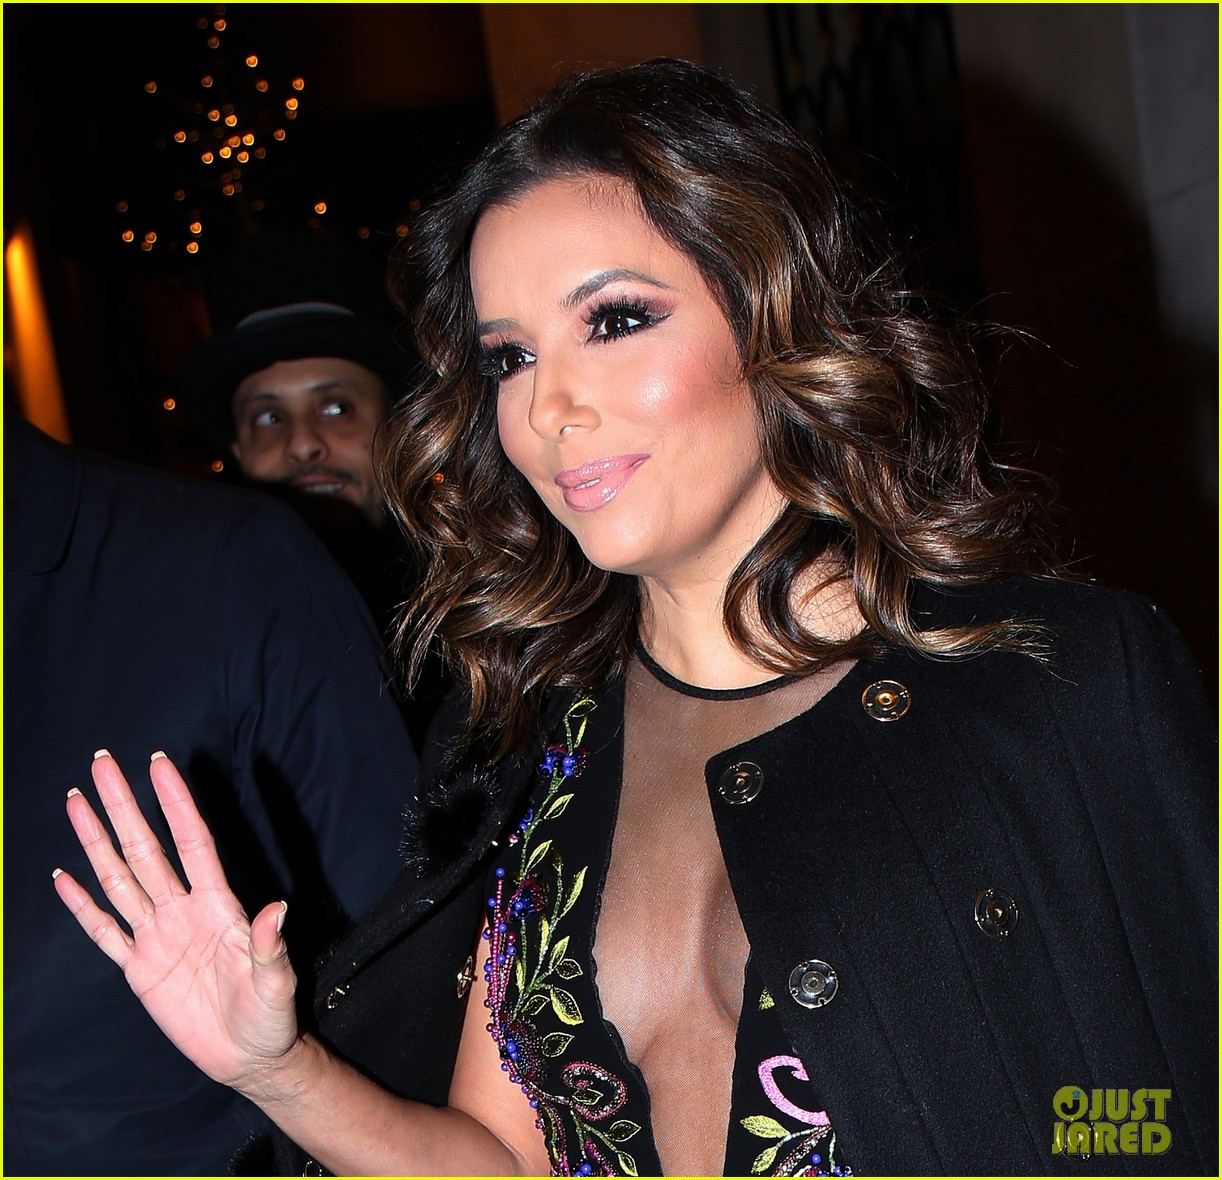 About Photo #3829715: Eva Longoria looked so stunning for her girls night out in Paris last night! The 41-year-old actress and businesswoman stepped out with models Doutzen Kroes and… Read More Here